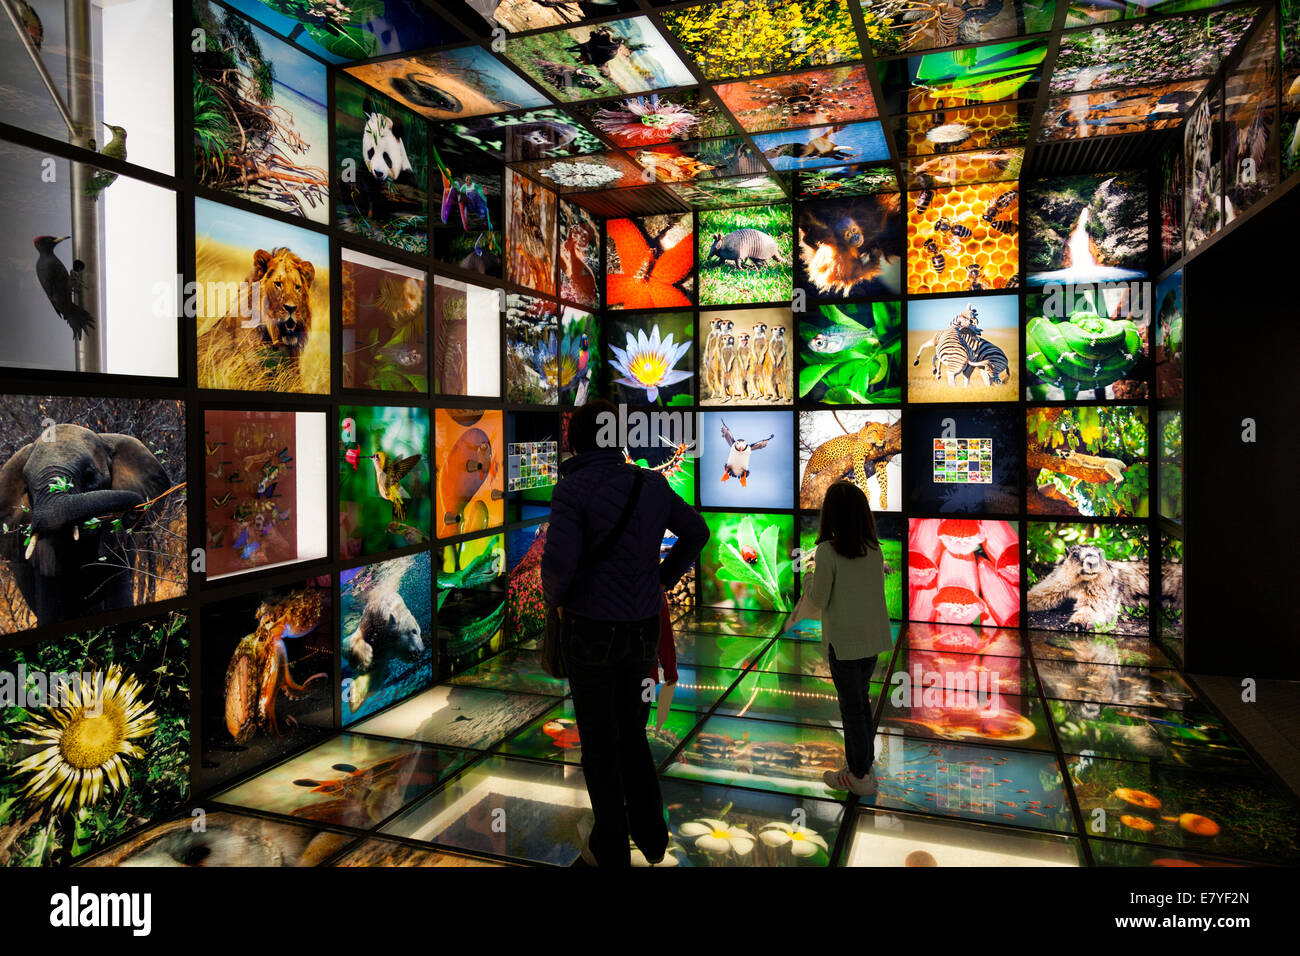 People inside a multimedia nature showroom - Stock Image